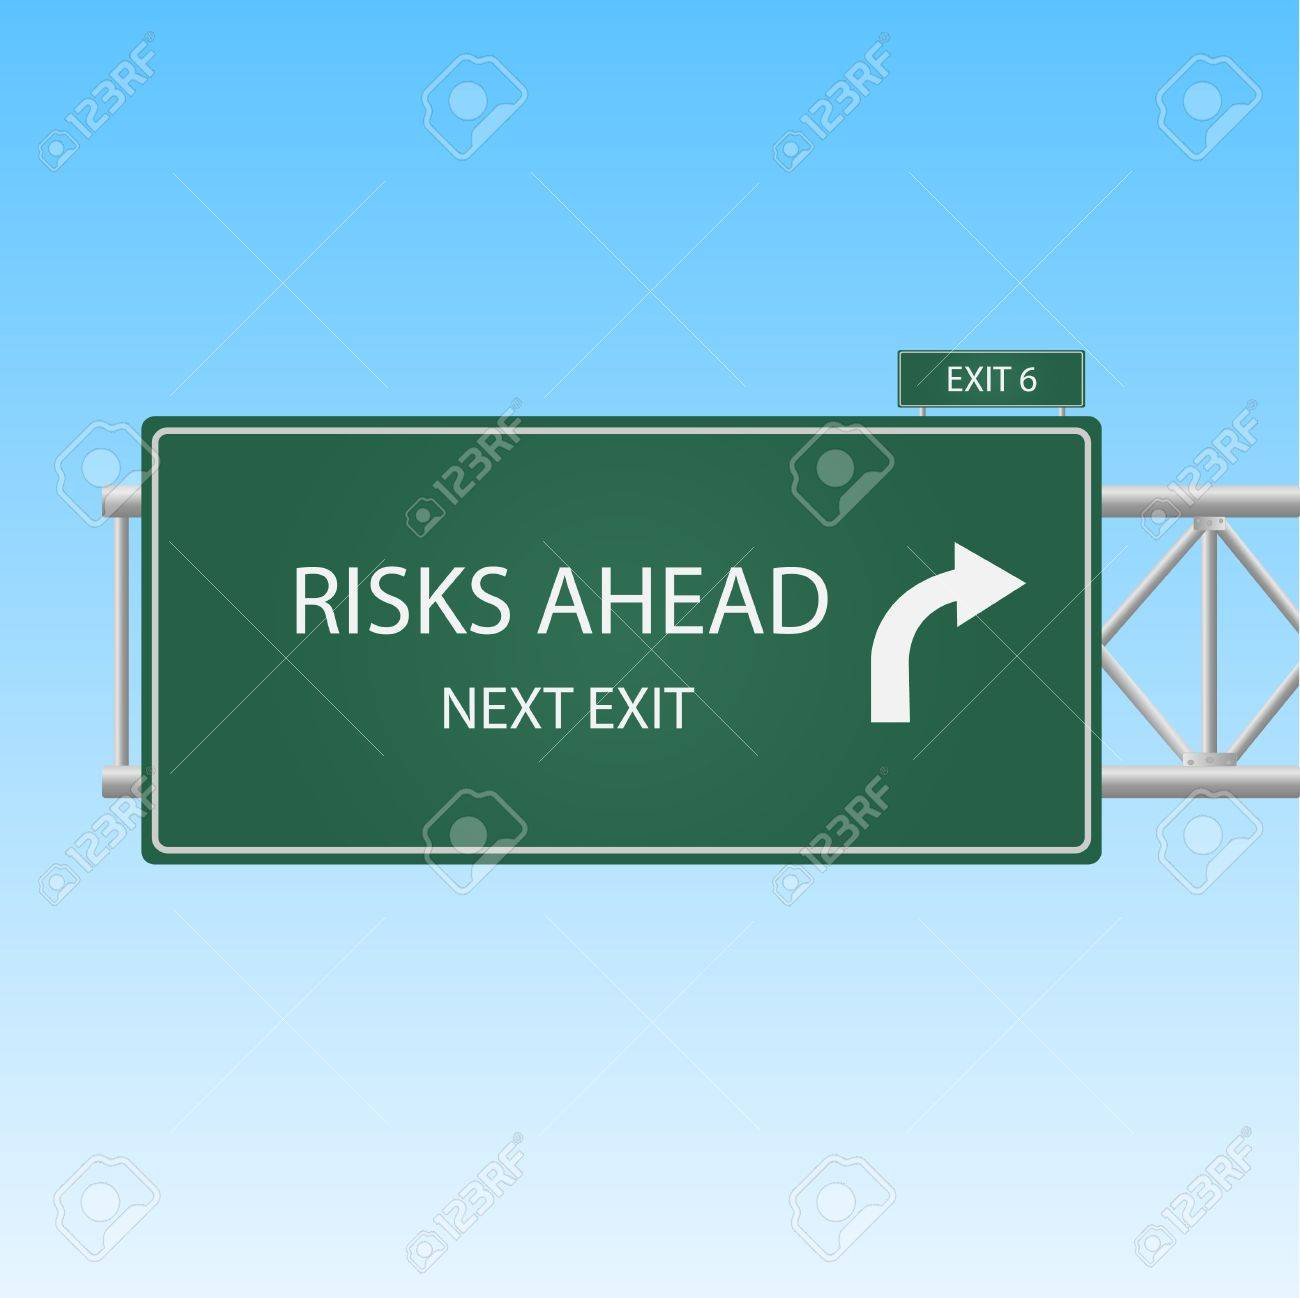 Image of a Risks Ahead highway sky against a blue sky background. - 9555641